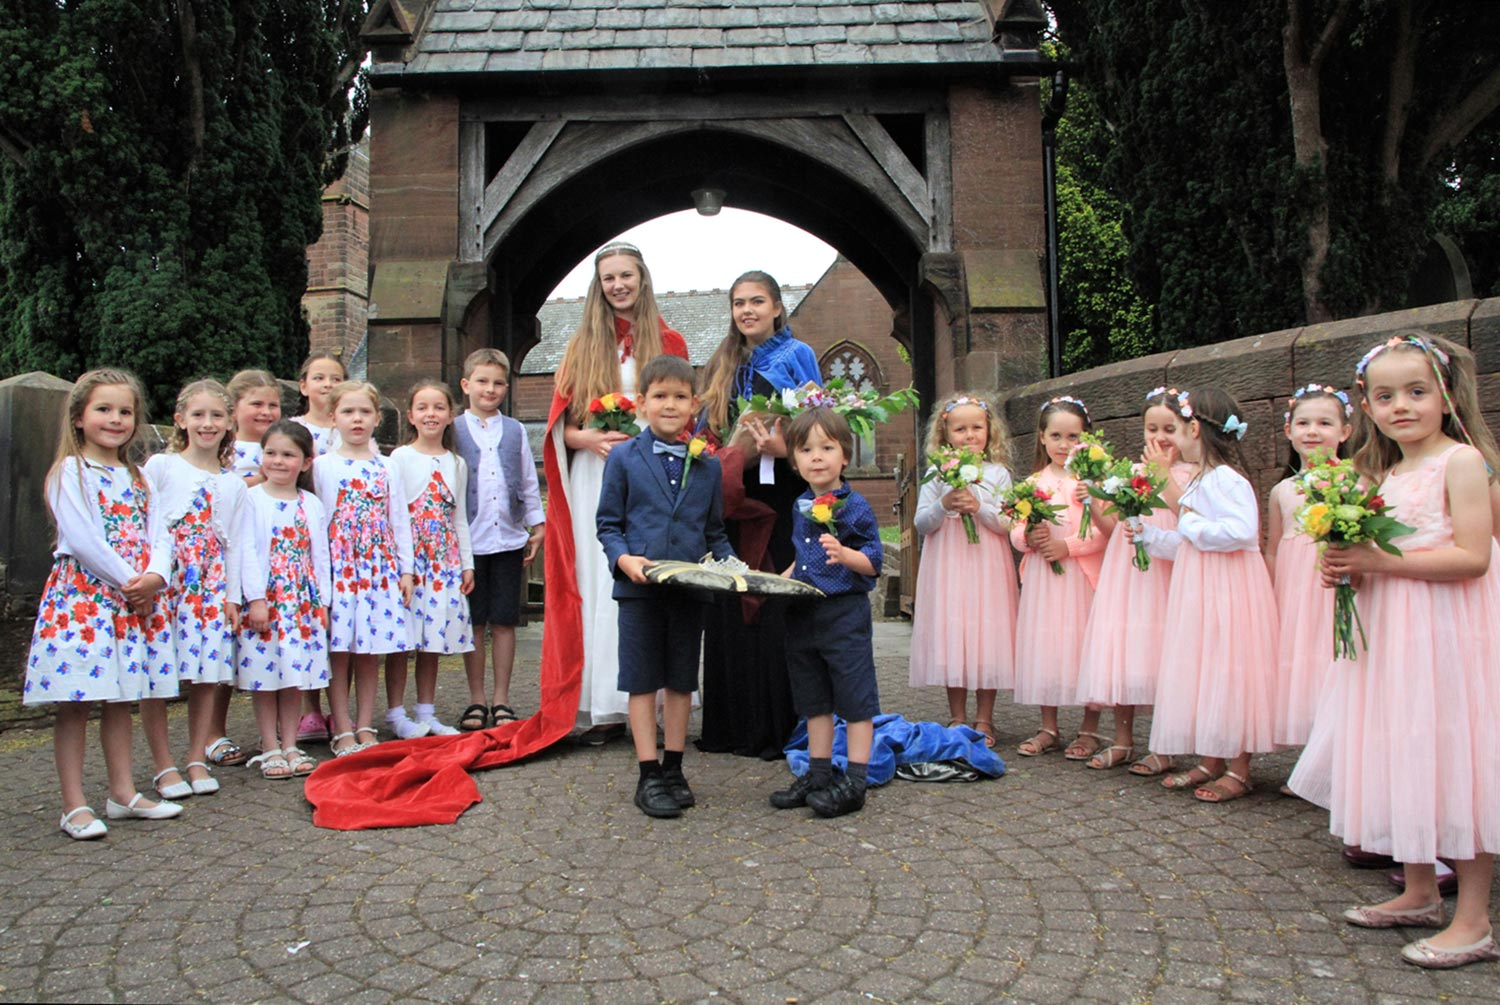 Christleton Rose Queens 2016 and 2017